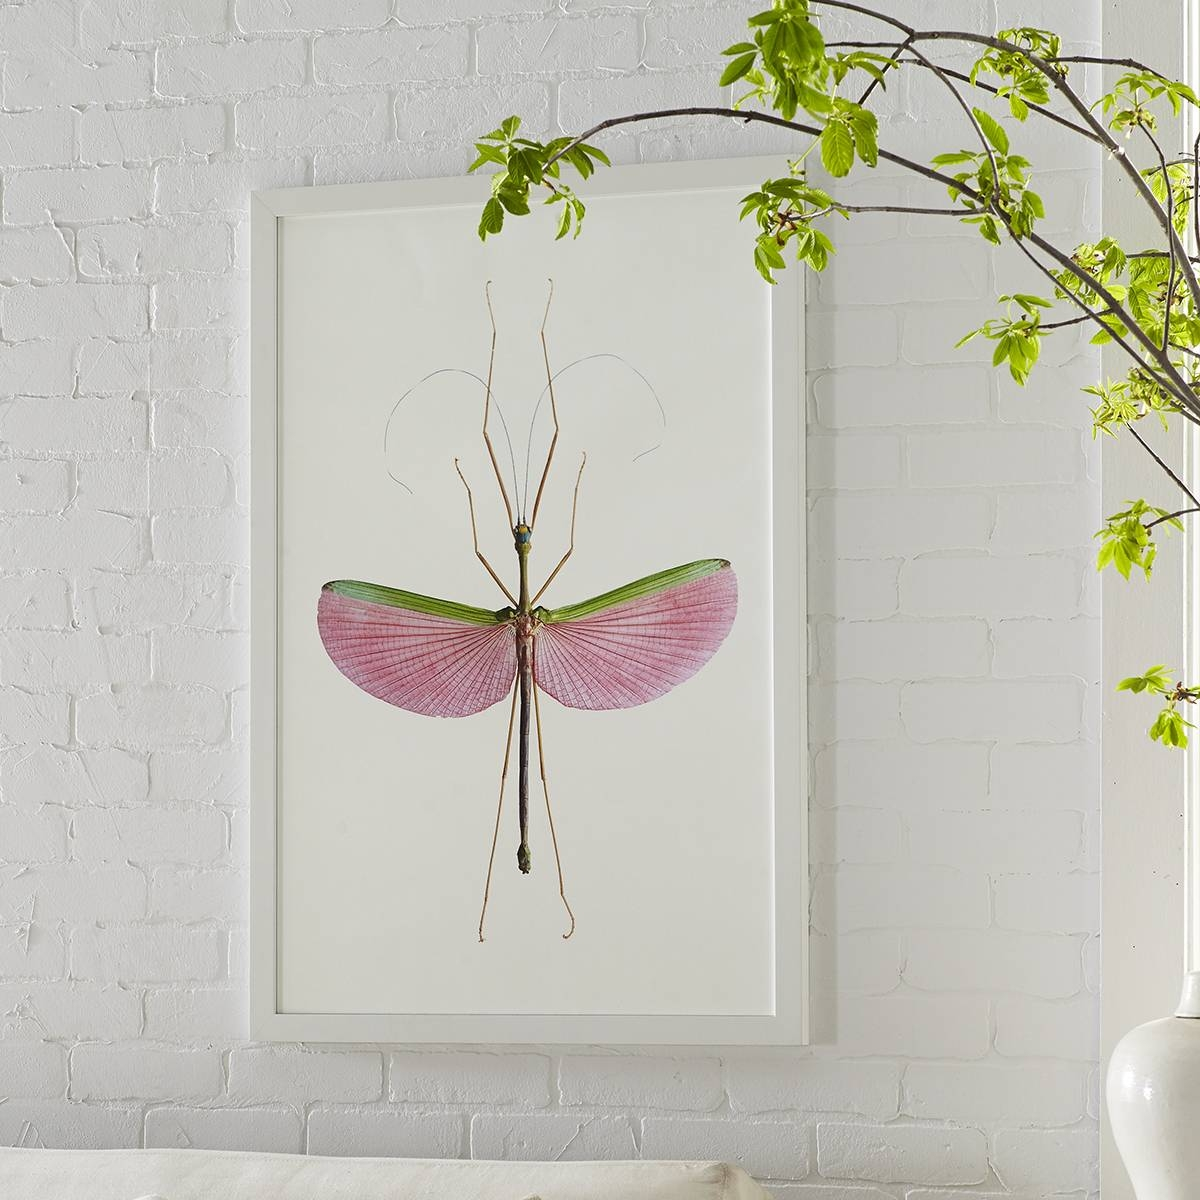 Stick Insect Wall Art – Watermelon | Wisteria Intended For Recent Insect Wall Art (View 3 of 30)